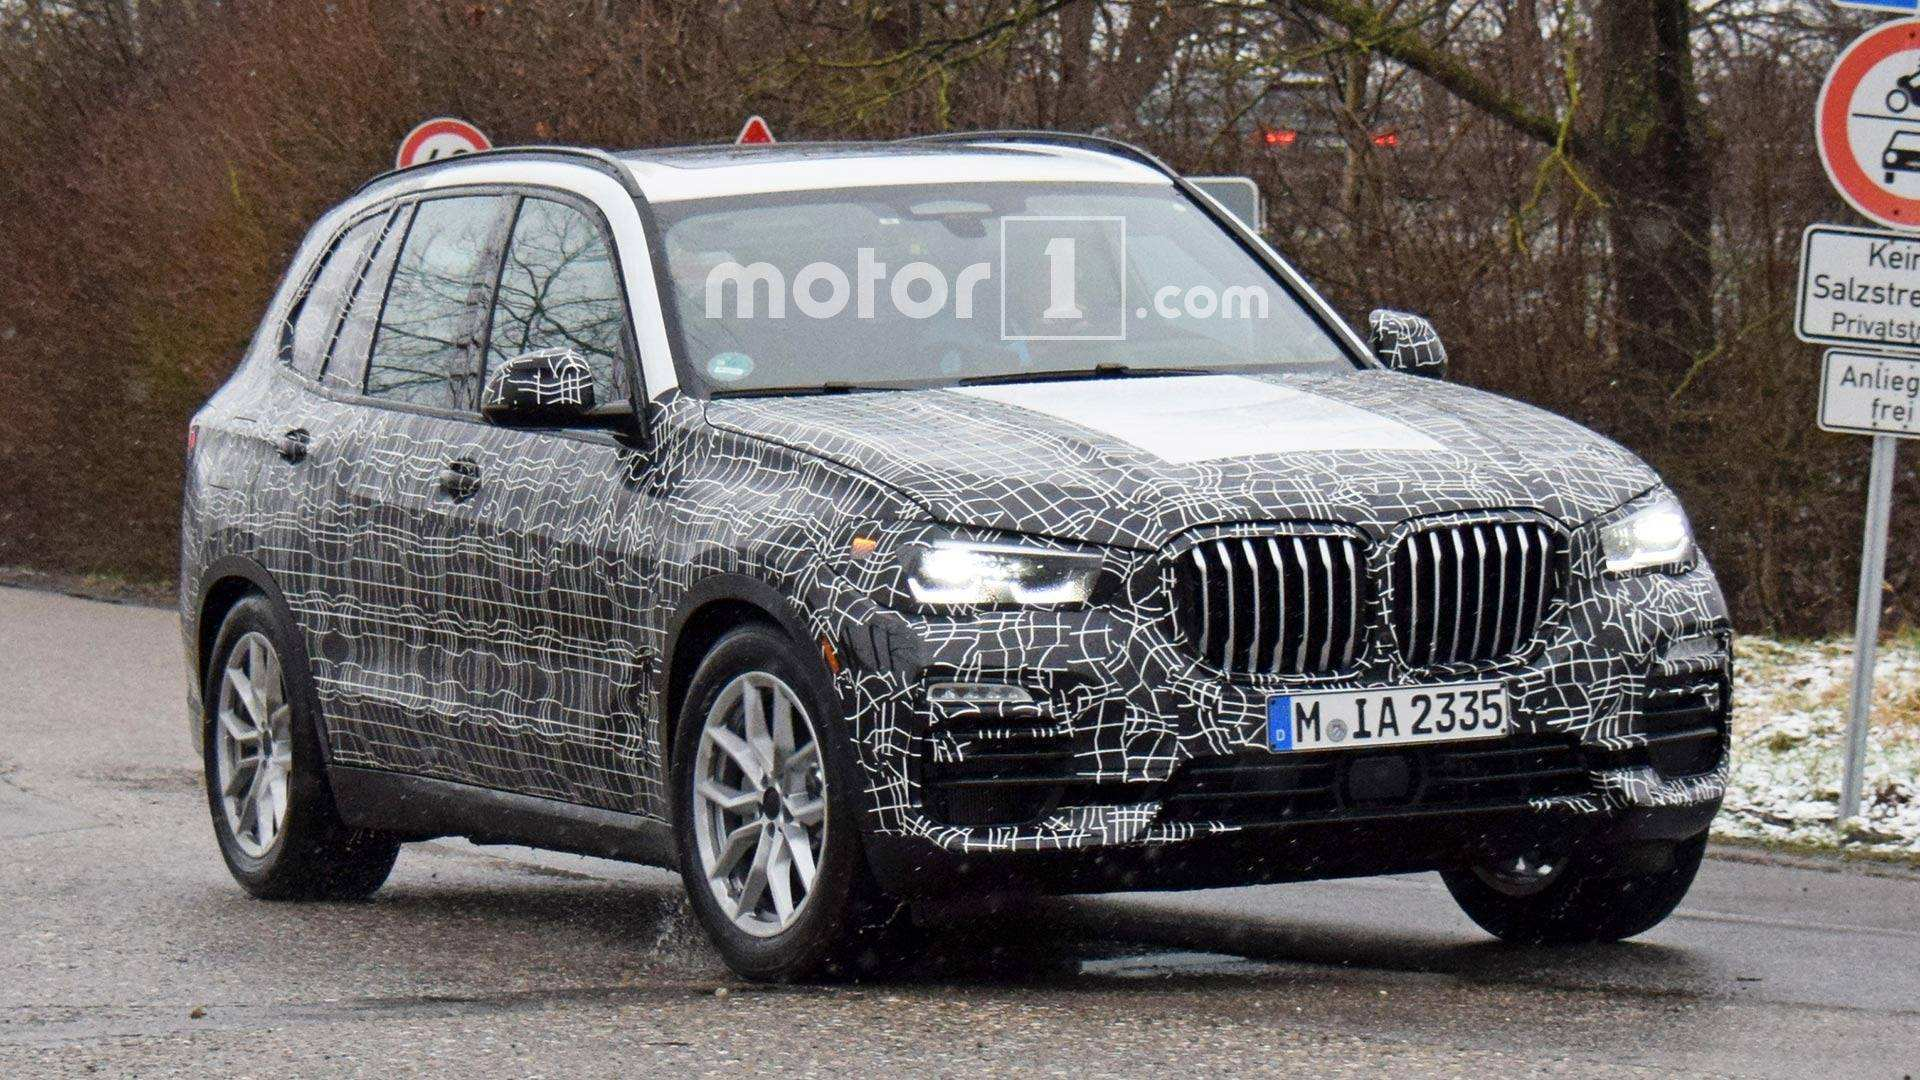 30 New The Bmw New Suv 2019 Spy Shoot Specs by The Bmw New Suv 2019 Spy Shoot